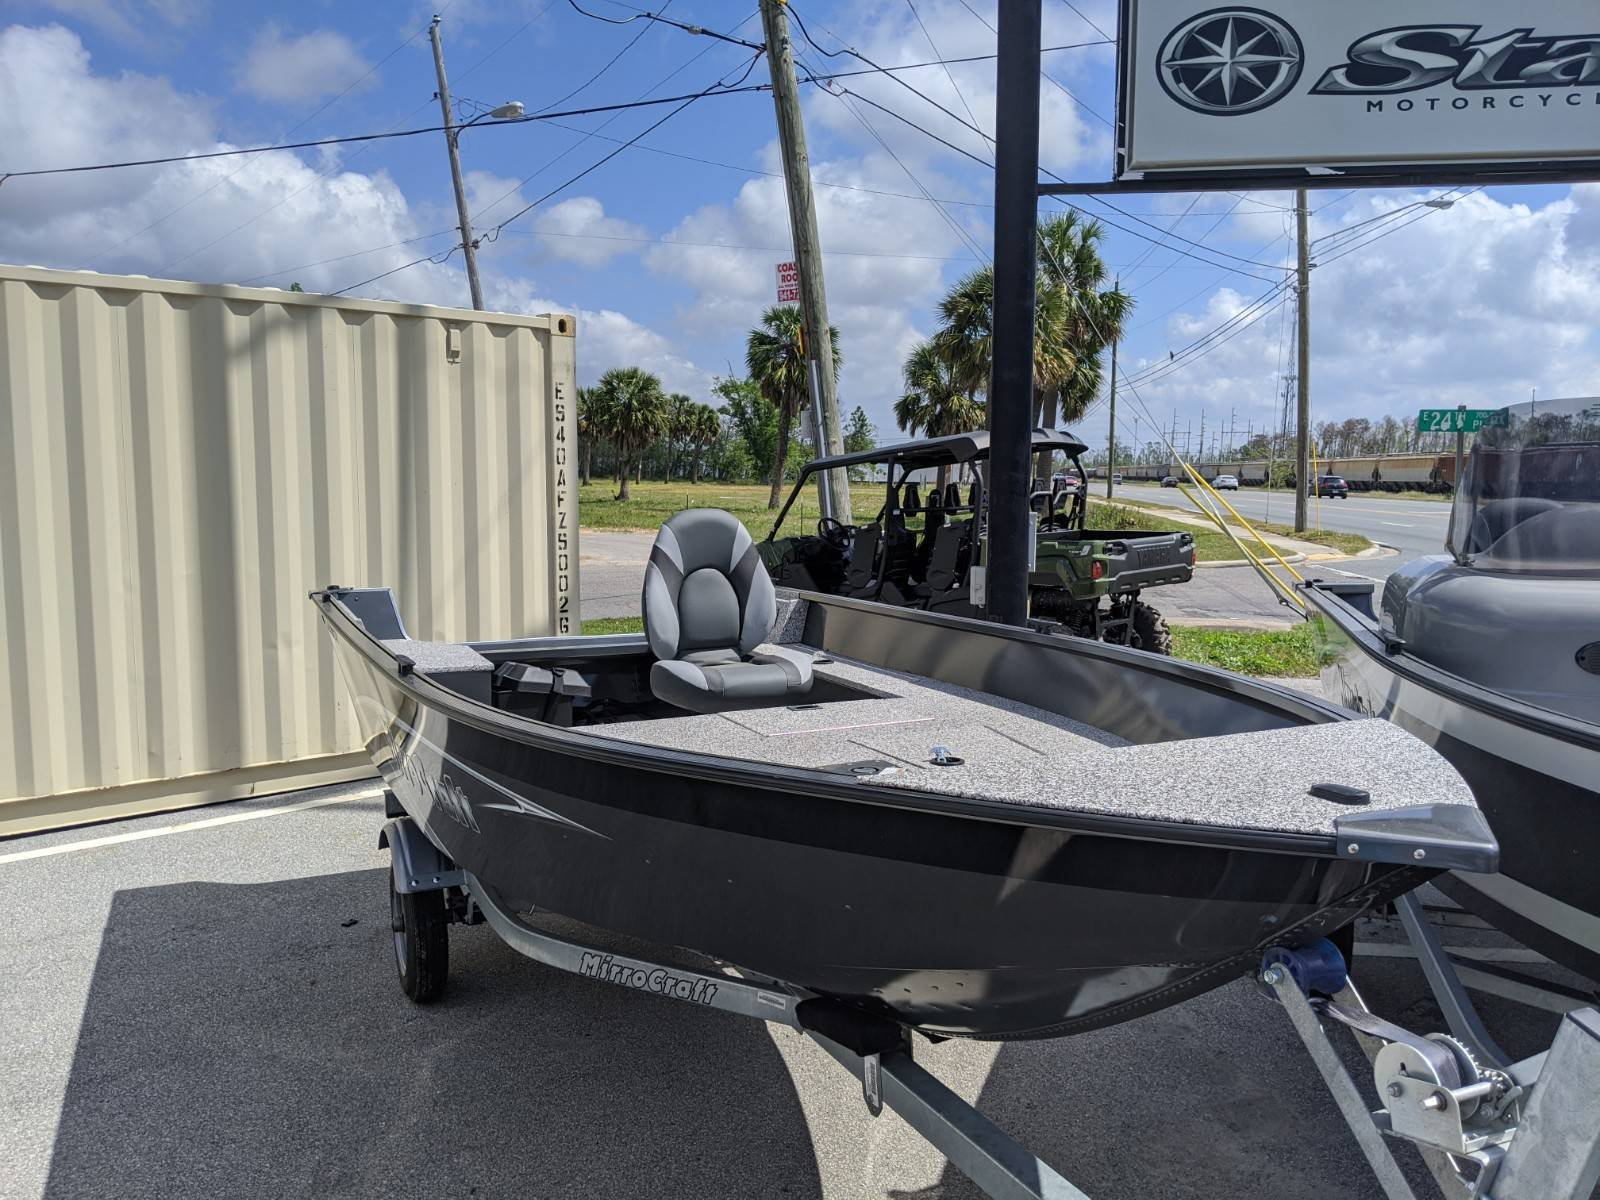 2020 MirroCraft OUTFITTER TILLER 14' in Panama City, Florida - Photo 2